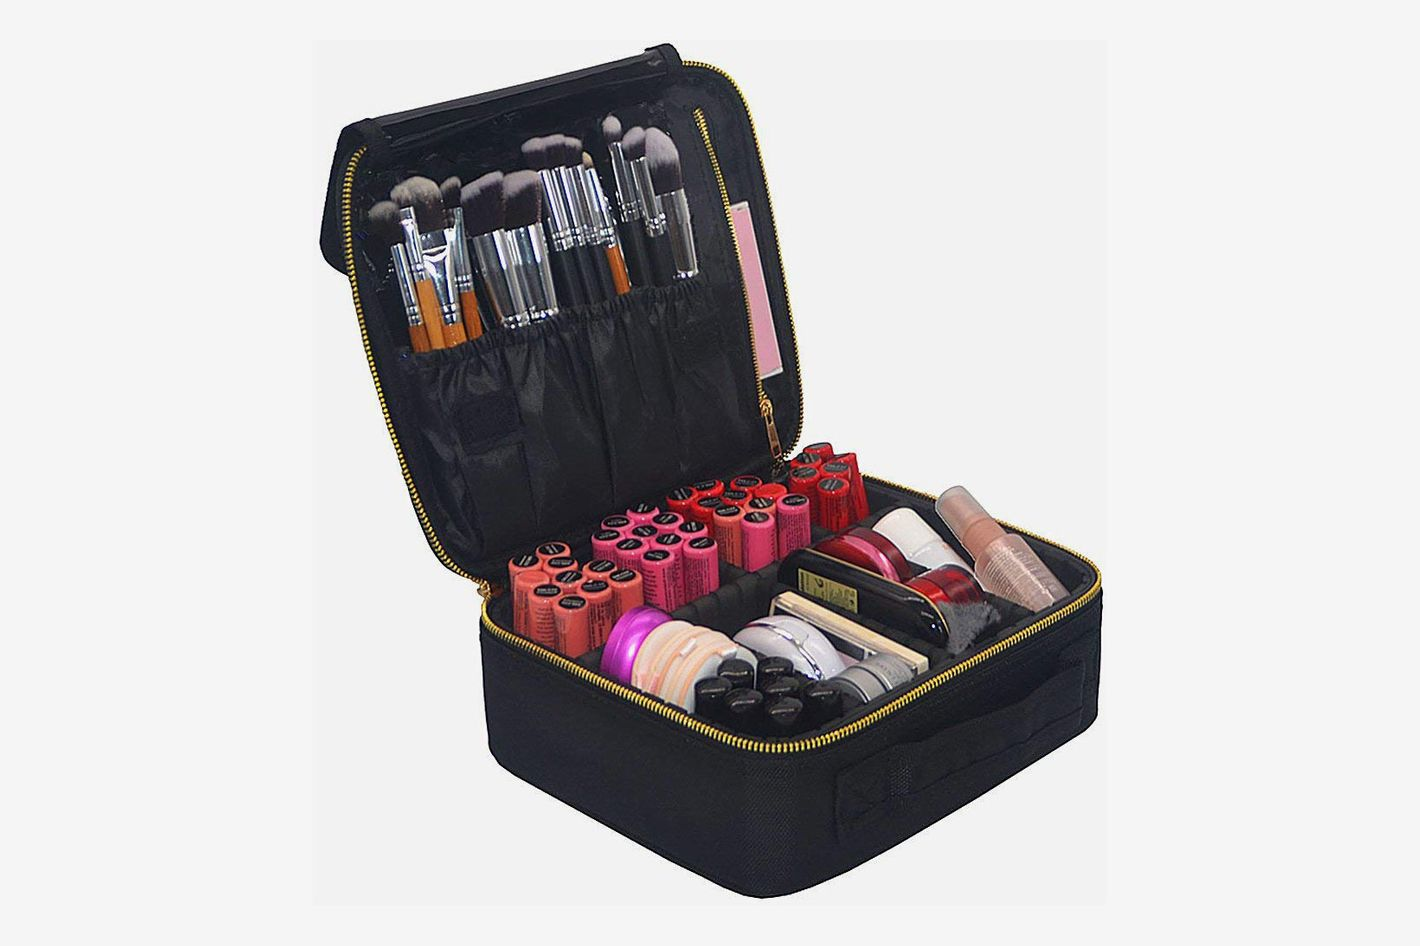 21 Best Makeup Bags Reviewed by Makeup Artists 2018 20a76267d259